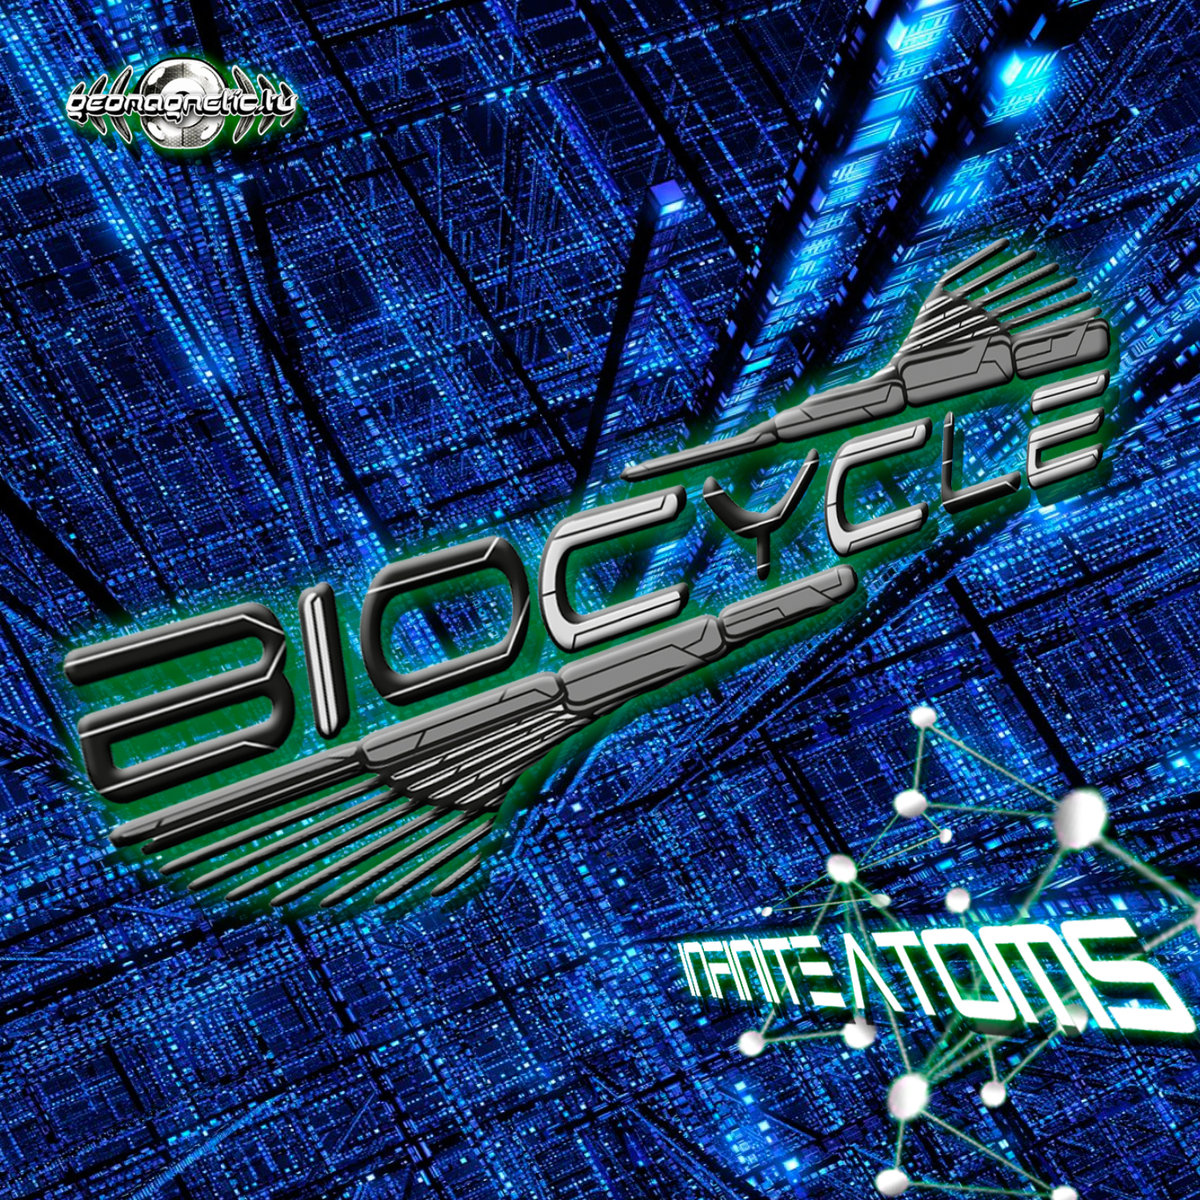 Biocycle - Infinite Atoms (artwork)